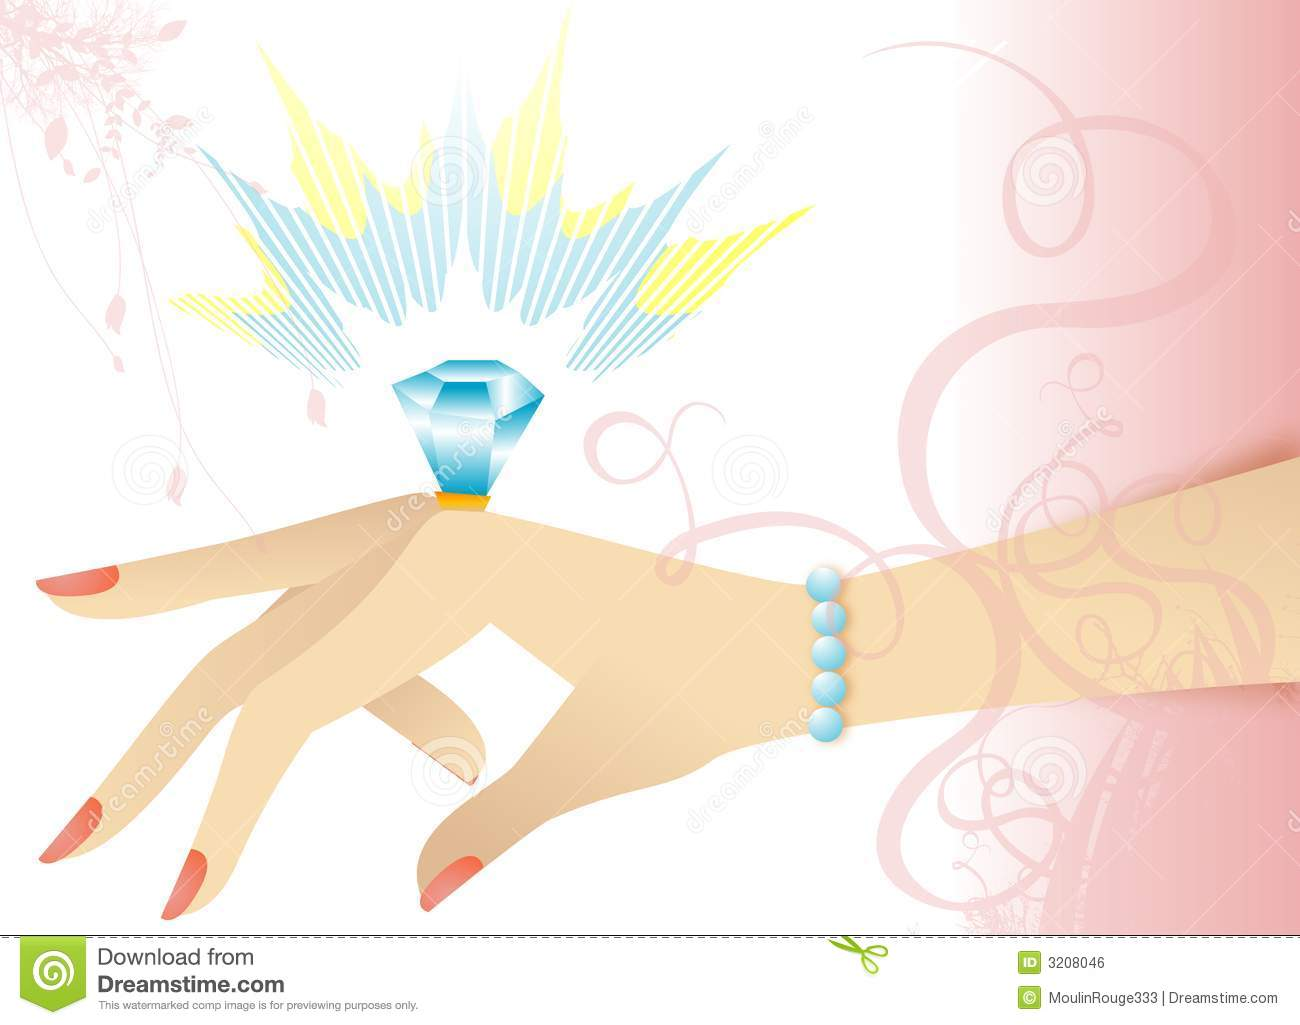 Engagement Ring On Hand Royalty Free Stock Image - Image